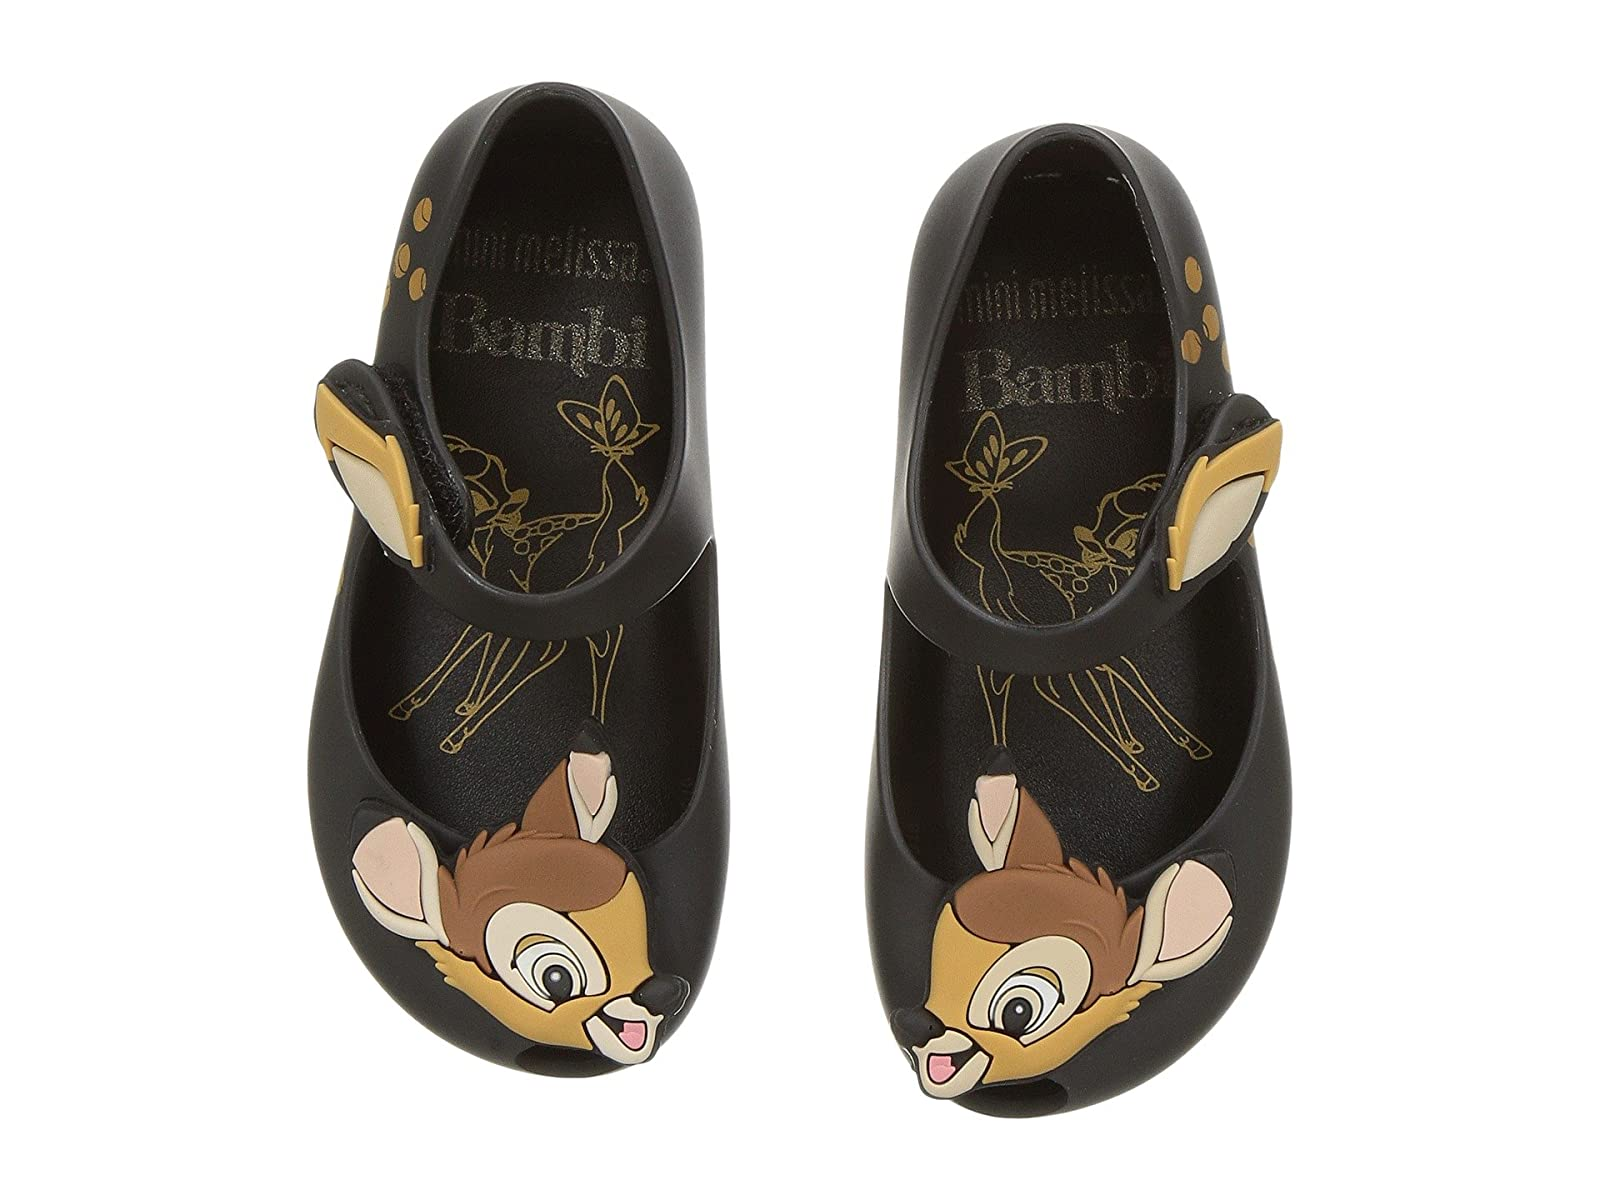 Mini Melissa Mini Kid) Ultragirl + Bambi (Toddler/Little Kid) Mini < Different goods <Men's/Women's f71db4